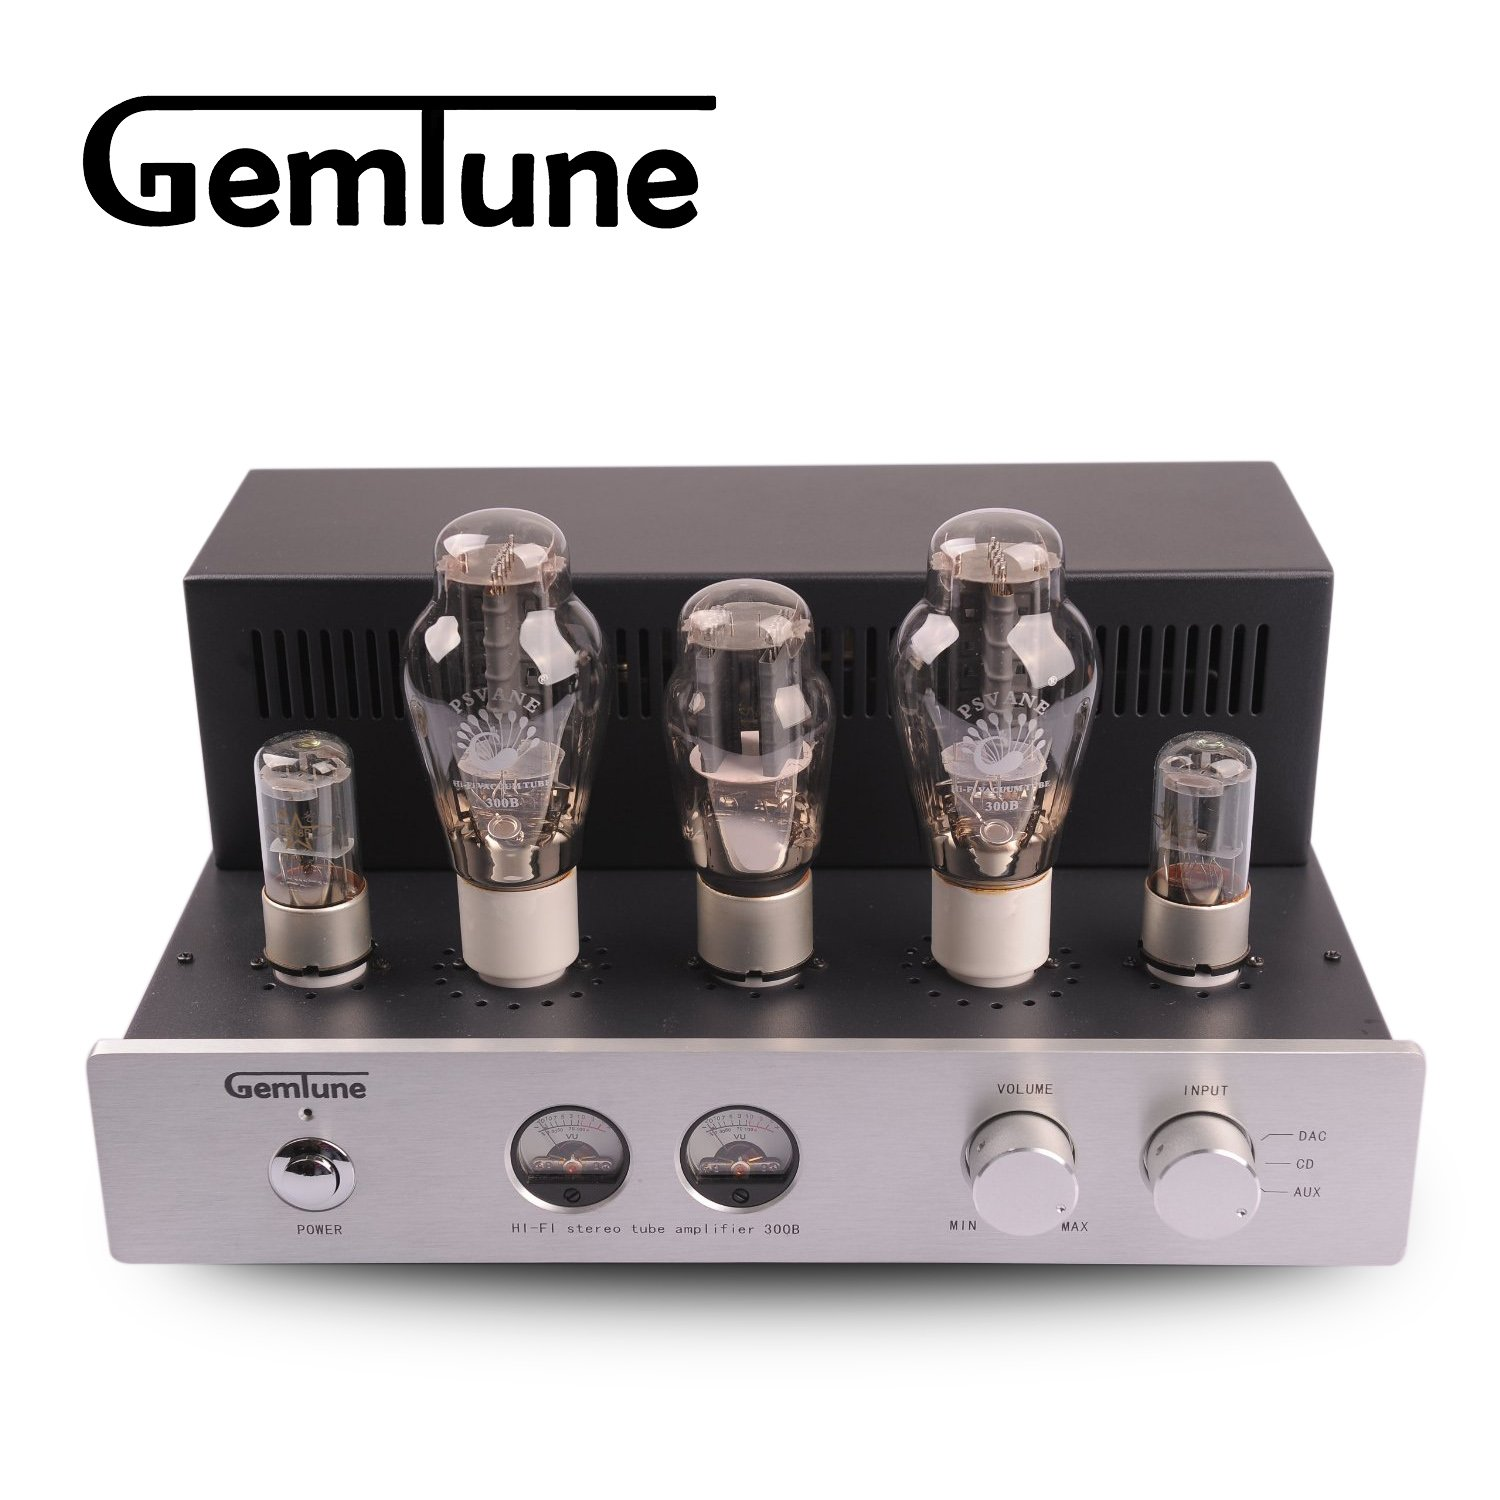 Amazon com: GemTune GP-01 Hi-end Vaccum Tube Amplifier with